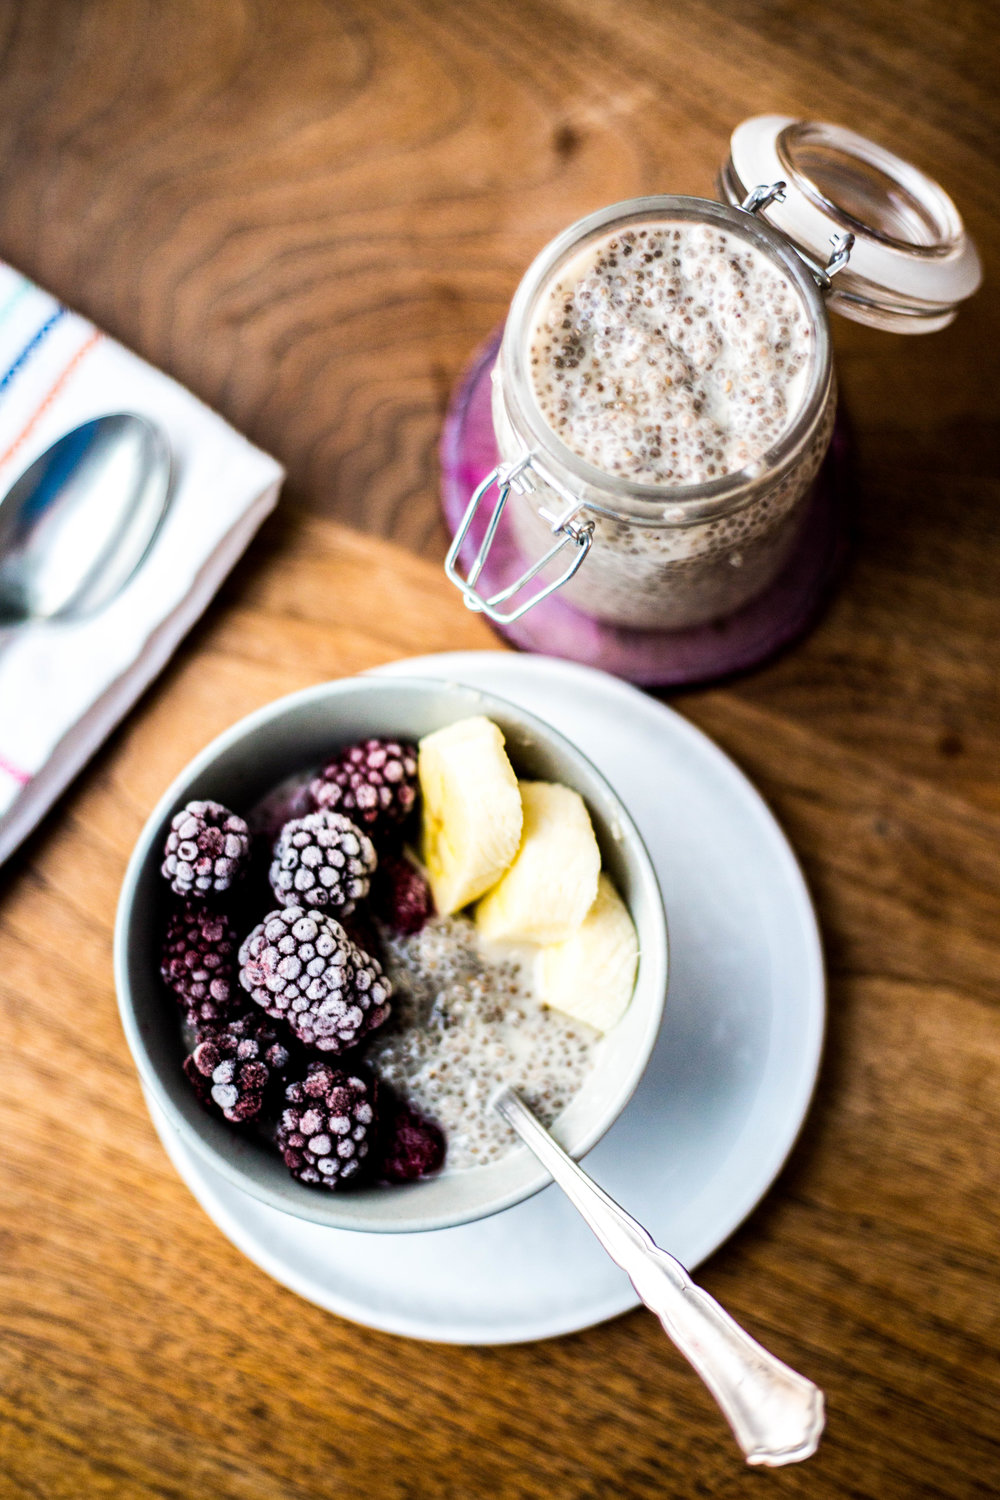 Chia Seed Pudding Recipe | Delicious & Simple | Vegan & Gluten-free | #puremamas #purekitchenblog